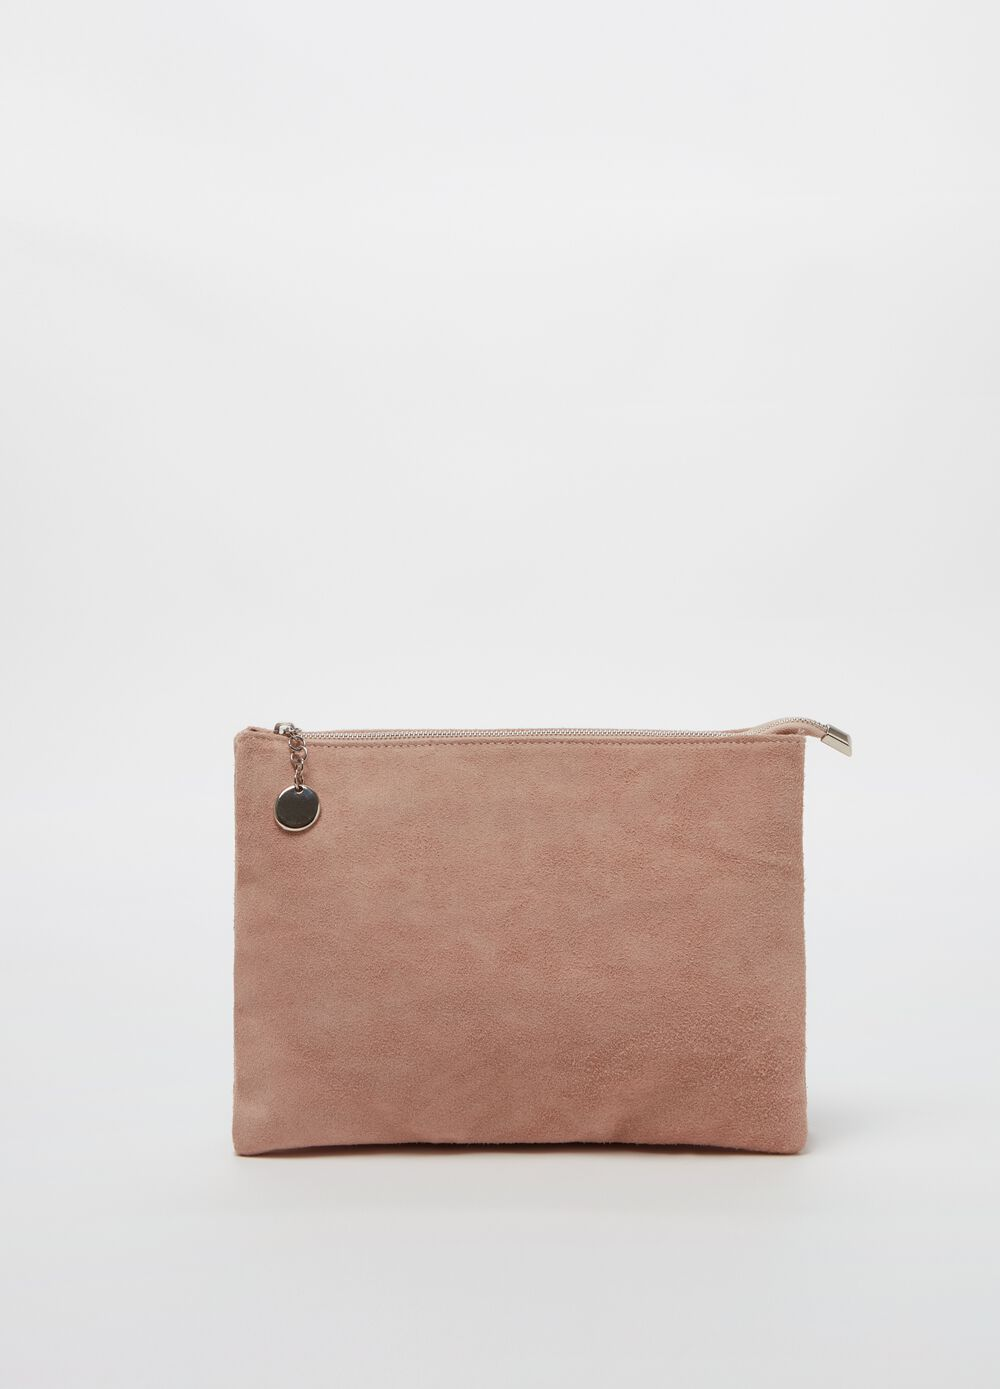 Solid colour clutch bag in suede leather